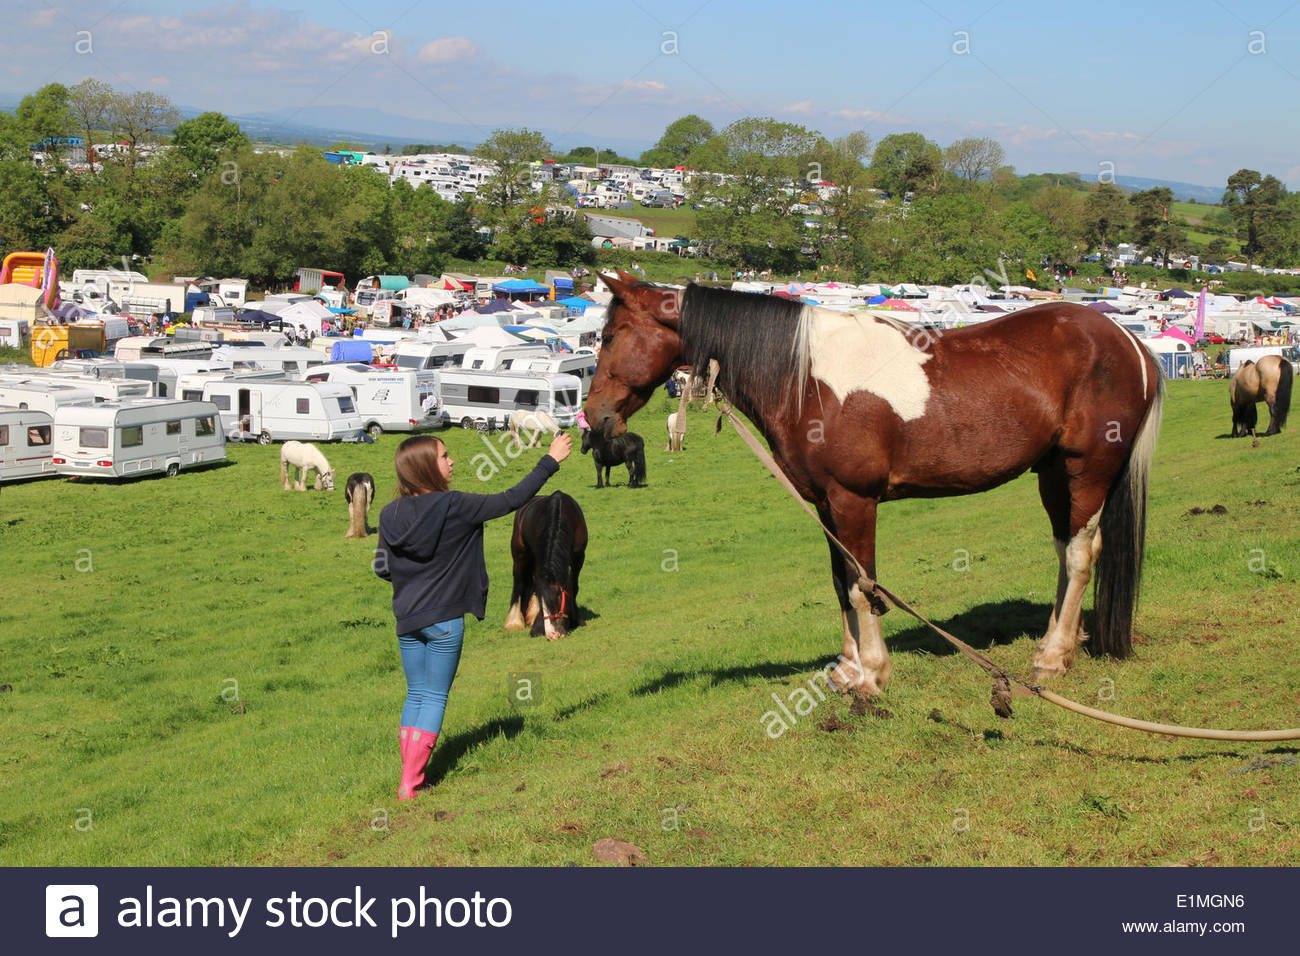 Appleby-in-Westmorland, Cumbria, UK. 6th June 2014. People enjoying the annual event of Appleby Horse Fair, one of the oldest horse fairs in Britain dating back to medieval times and this year taking place between the 5th and 11th June 2014. The event is the largest of its kind in Europe when thousands of Gypsies and travellers arrive in Cumbria. Credit:  Jim Nicholson/Alamy Live News - Stock Image